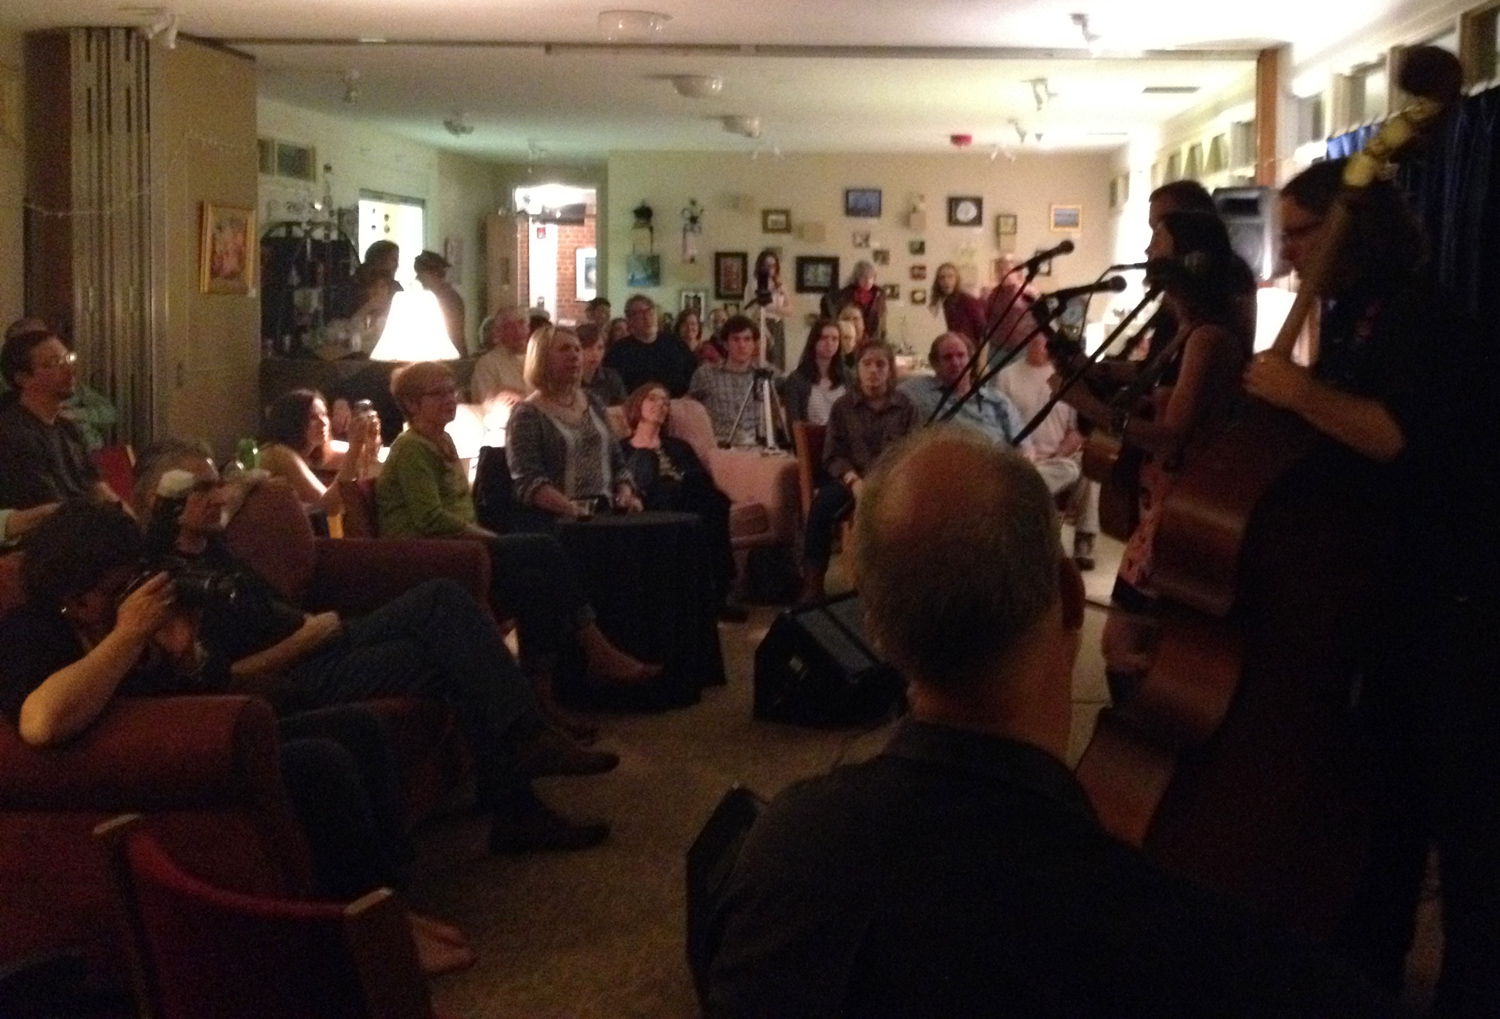 A full house enjoys the sounds of Martha Bassett, Sam Frazier & Pat Lawrence on March 29 at The Creative Center